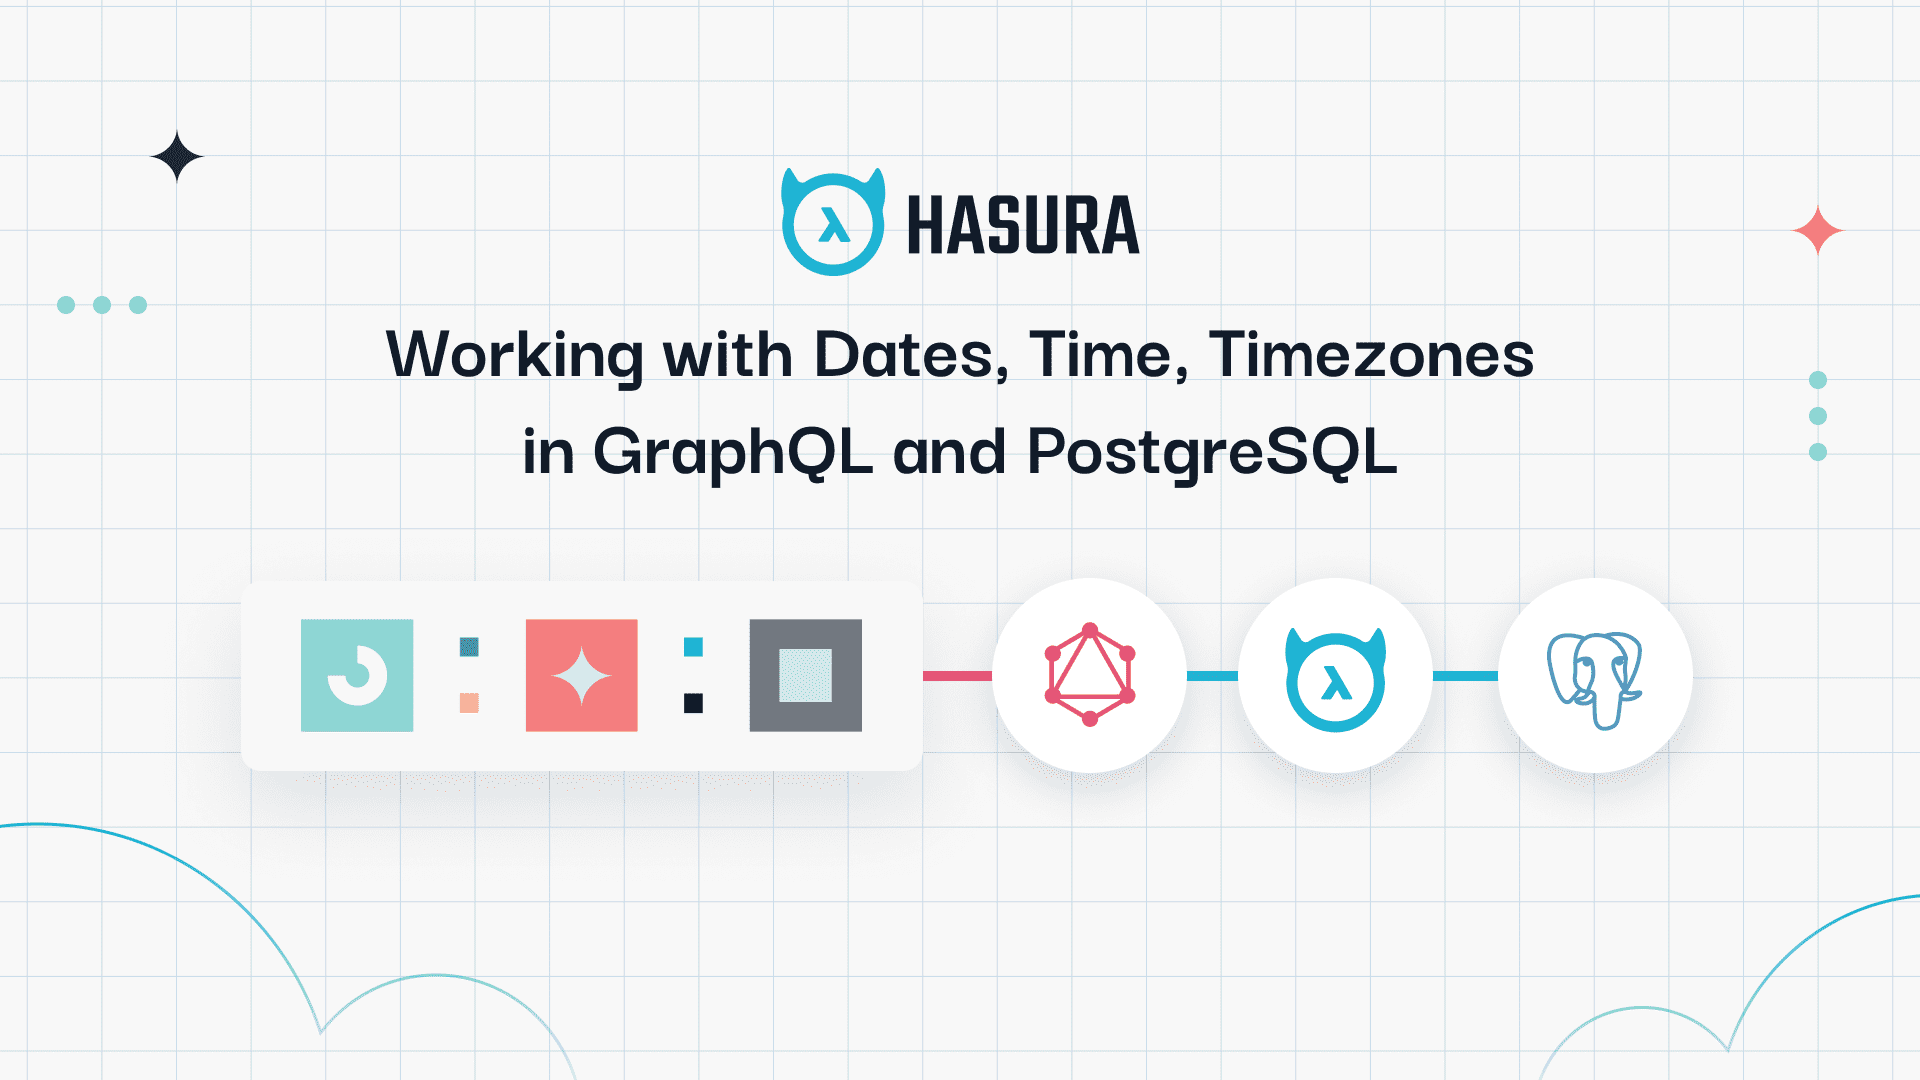 Working with Dates, Time, Timezones in GraphQL and PostgreSQL